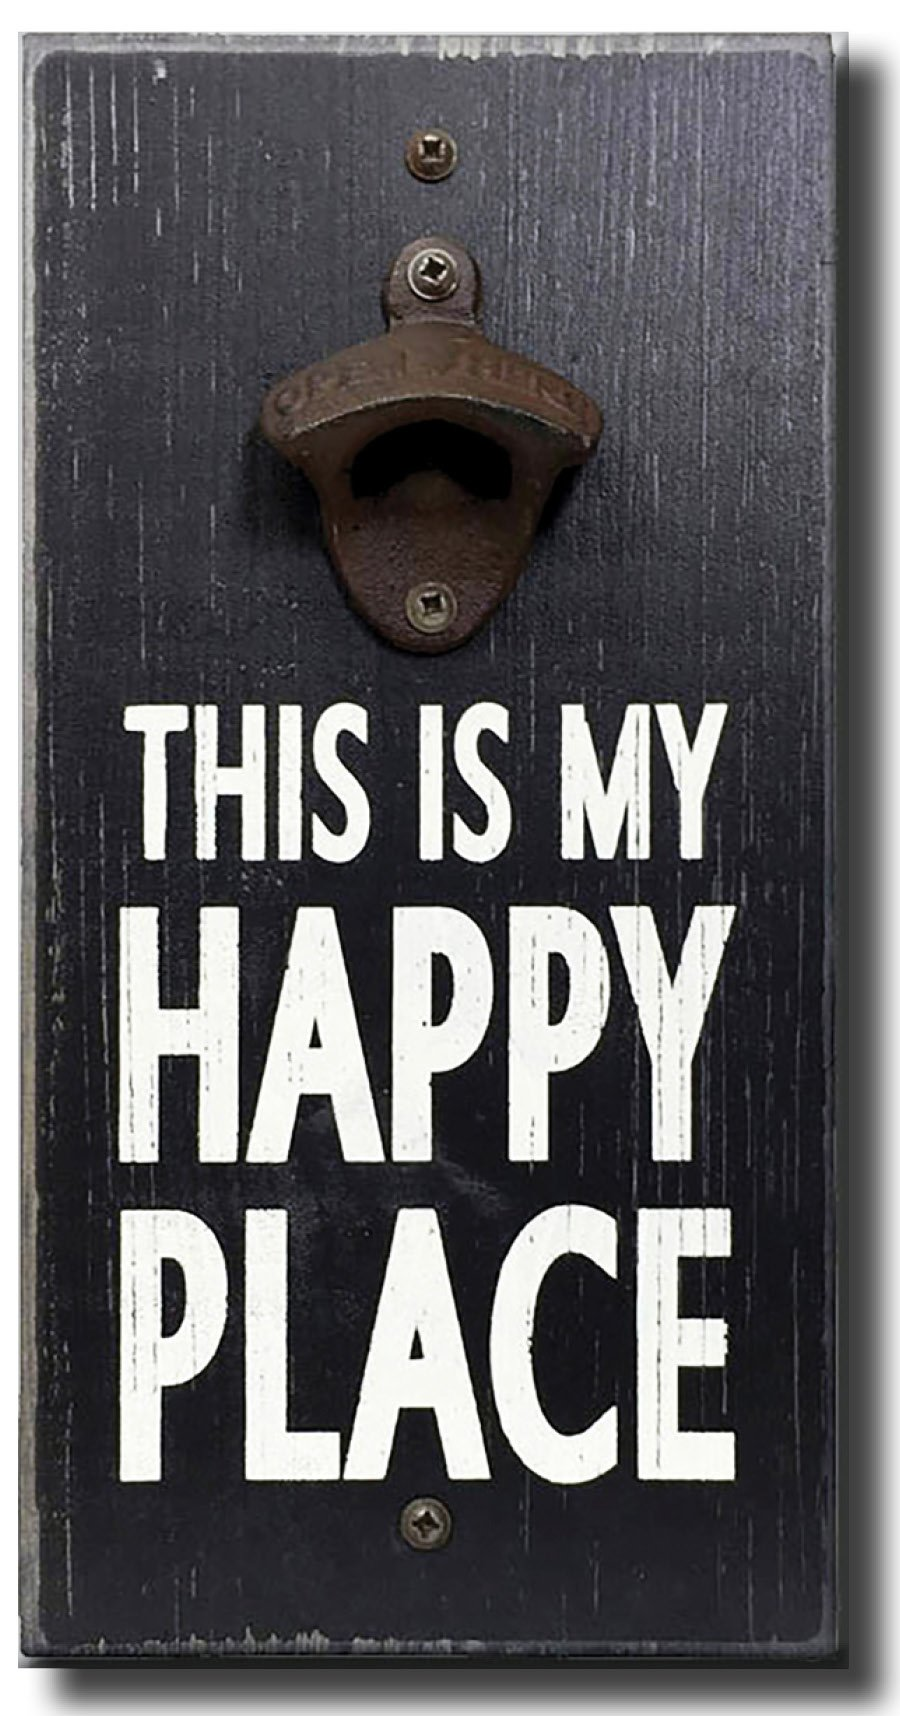 My Happy Place - Wooden Wall Mounted Bottle Opener by My Word!